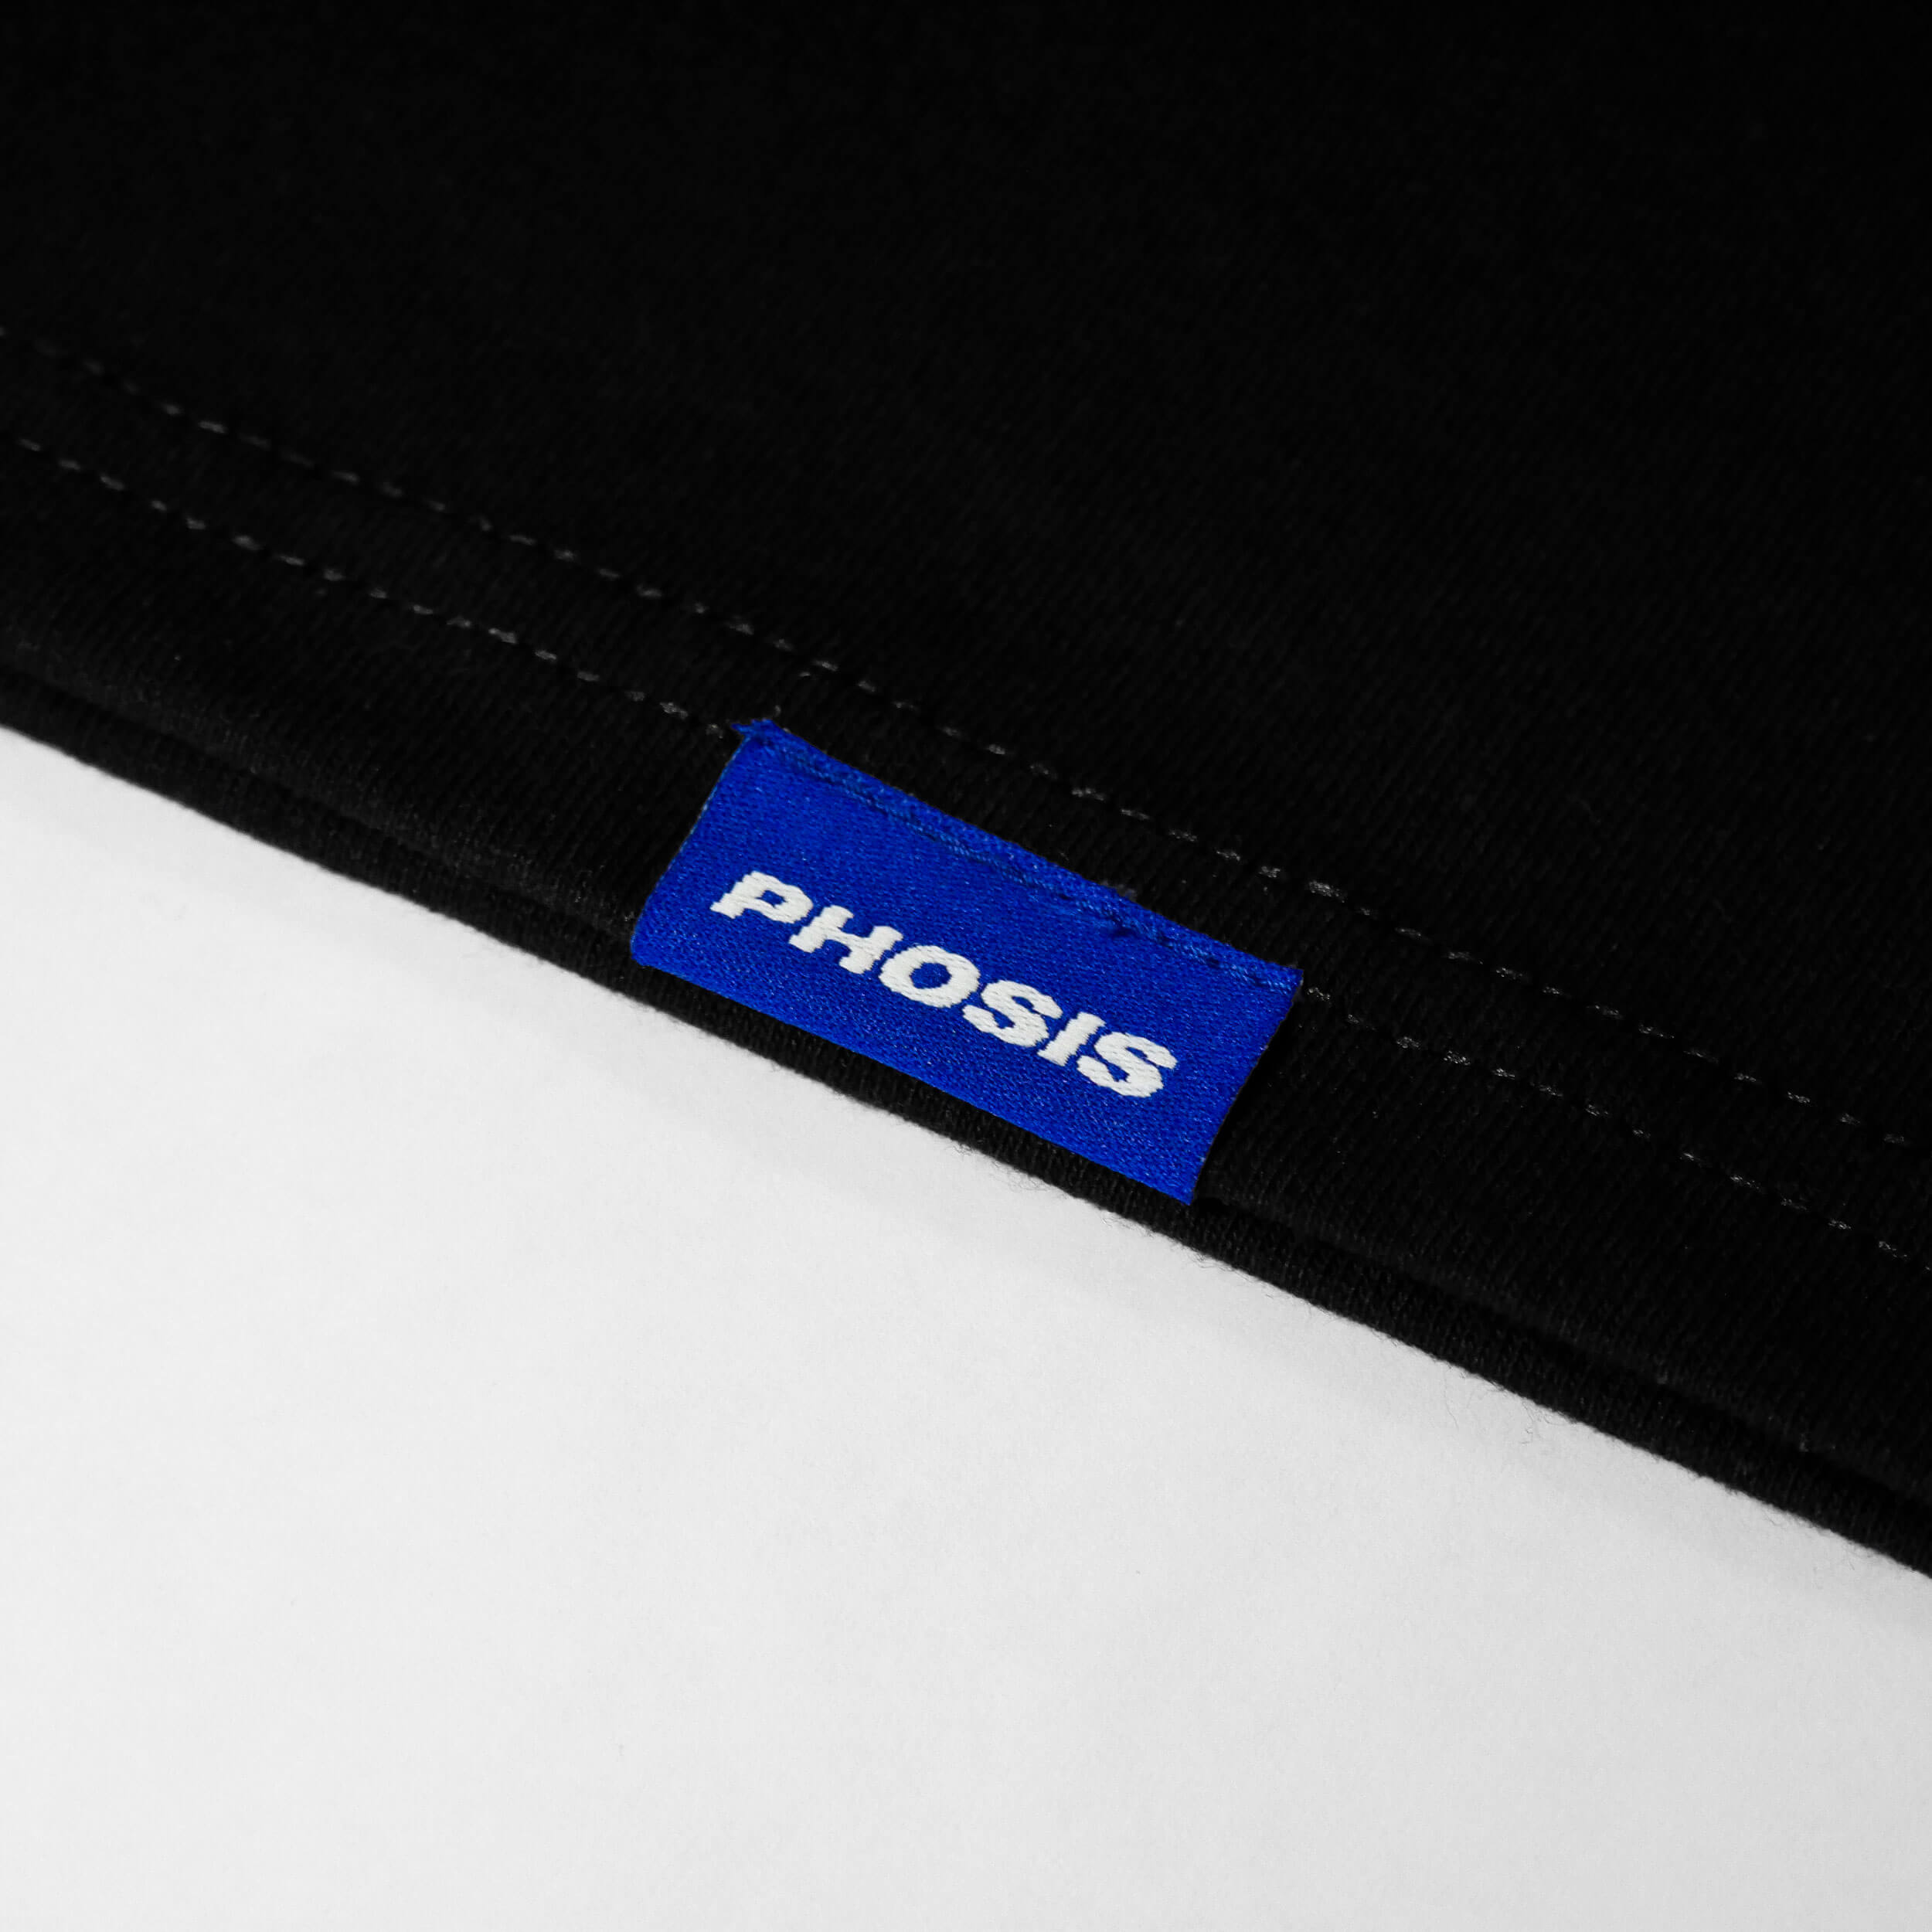 Close up view of the blue woven label in the SHOCK VALUE black t-shirt from PHOSIS Clothing